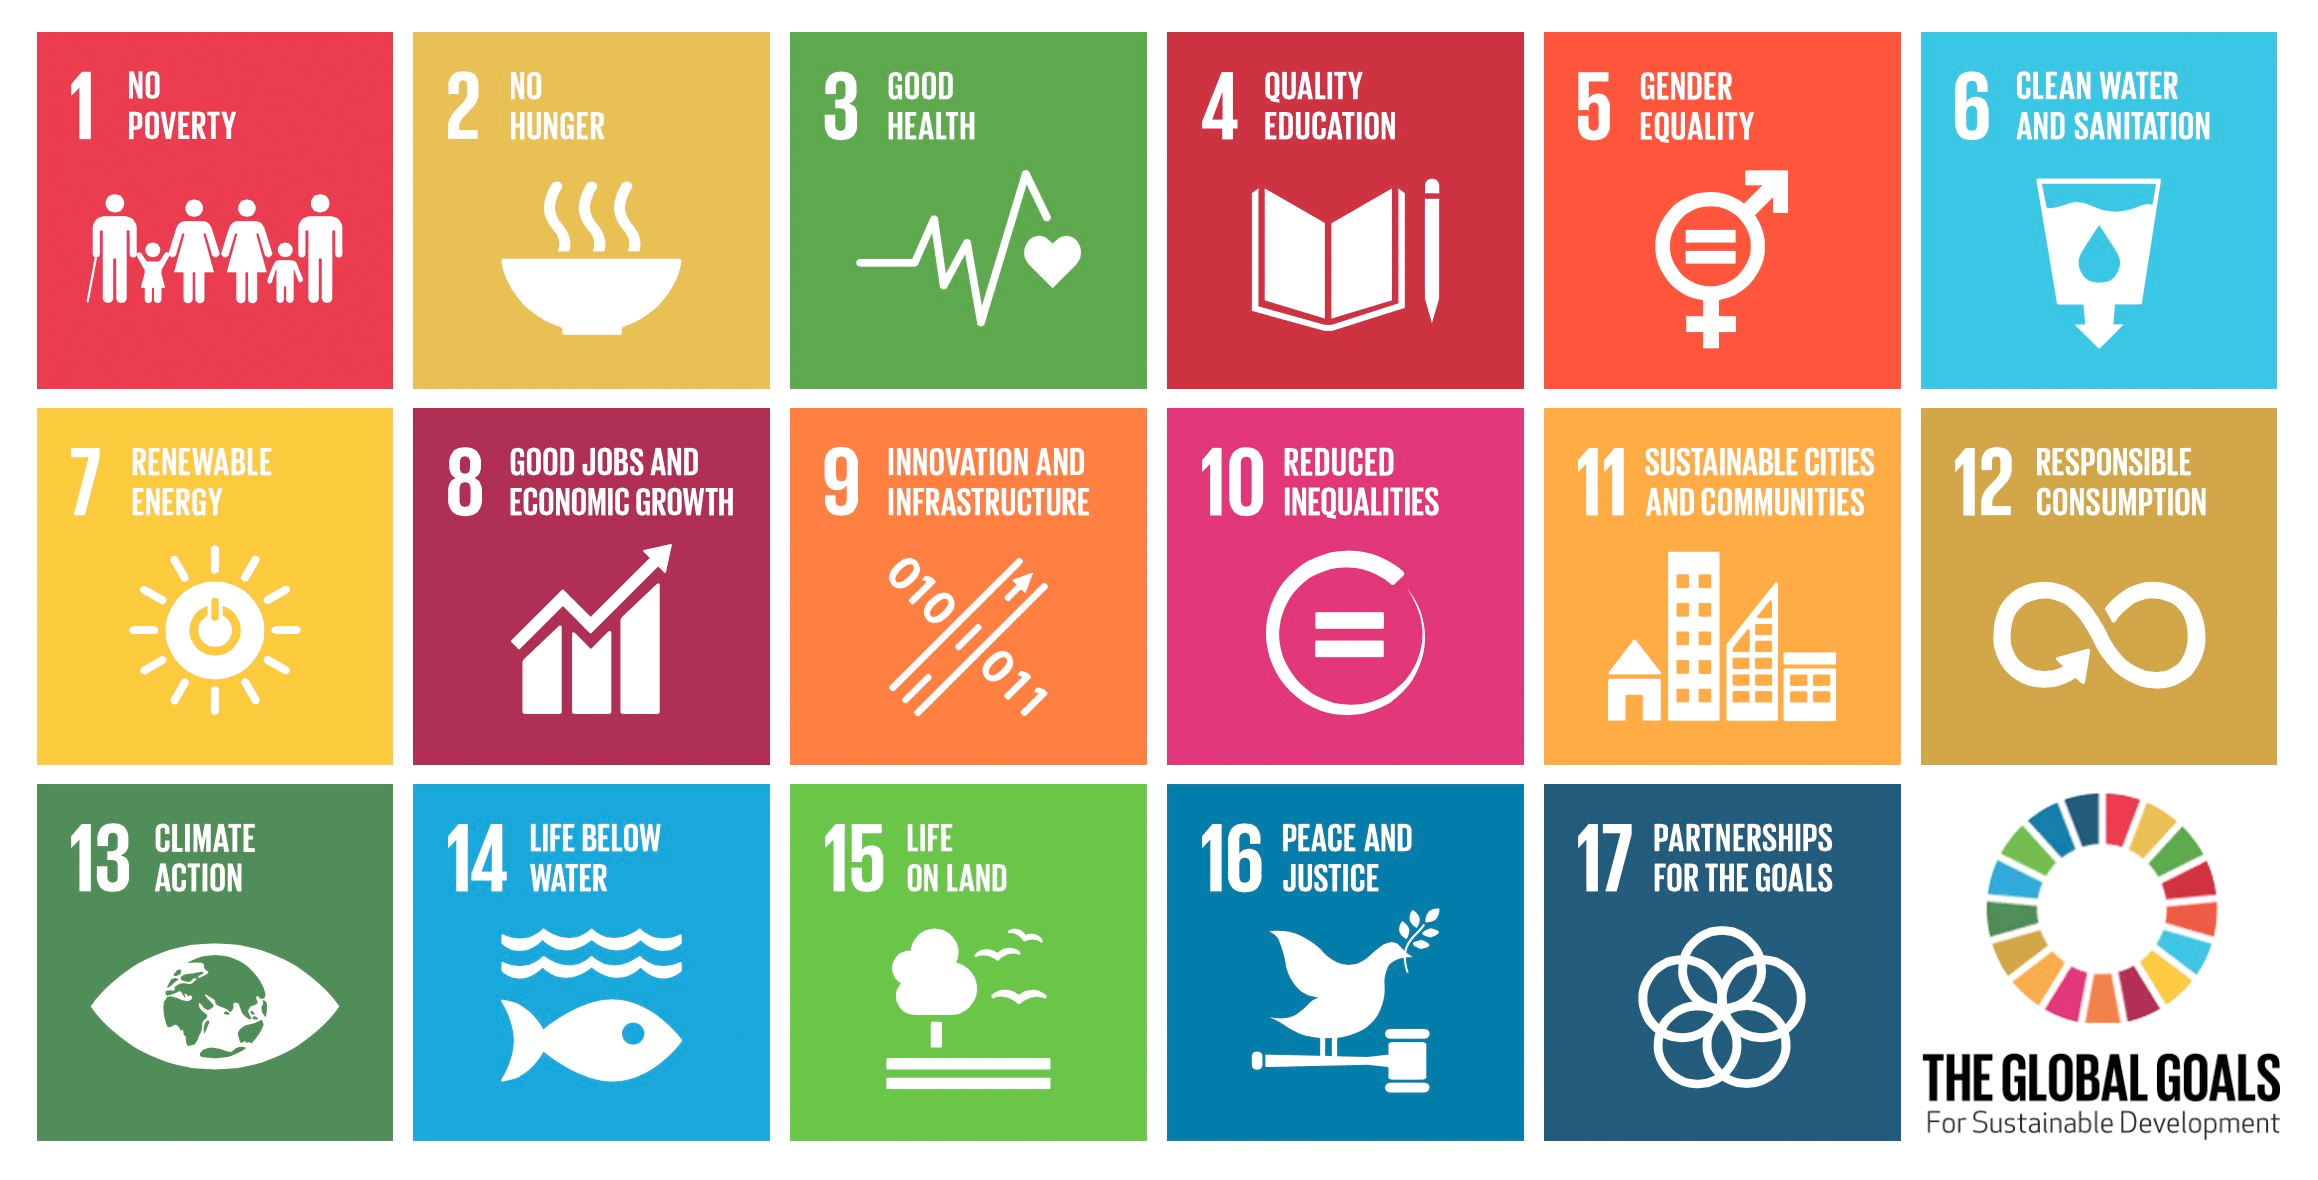 the-global-goals